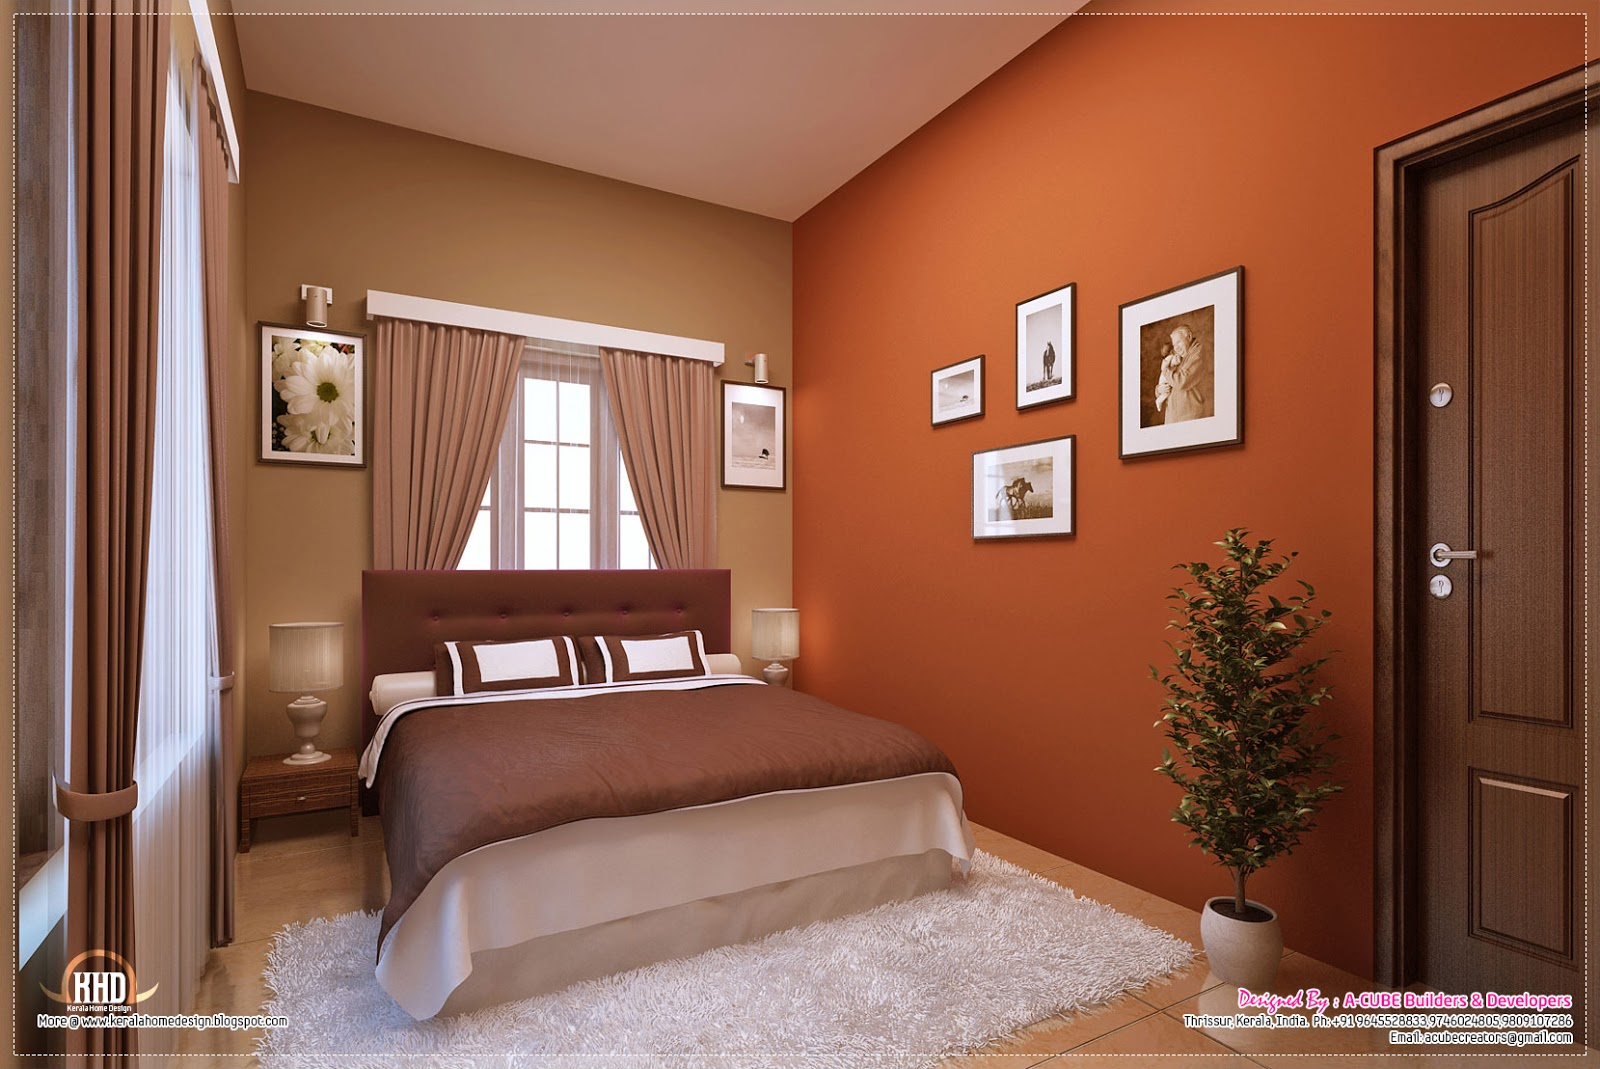 Indian Bedroom Photo Gallery Style Ideas. Small Indian Bedroom Interior Design Pictures   House Decor